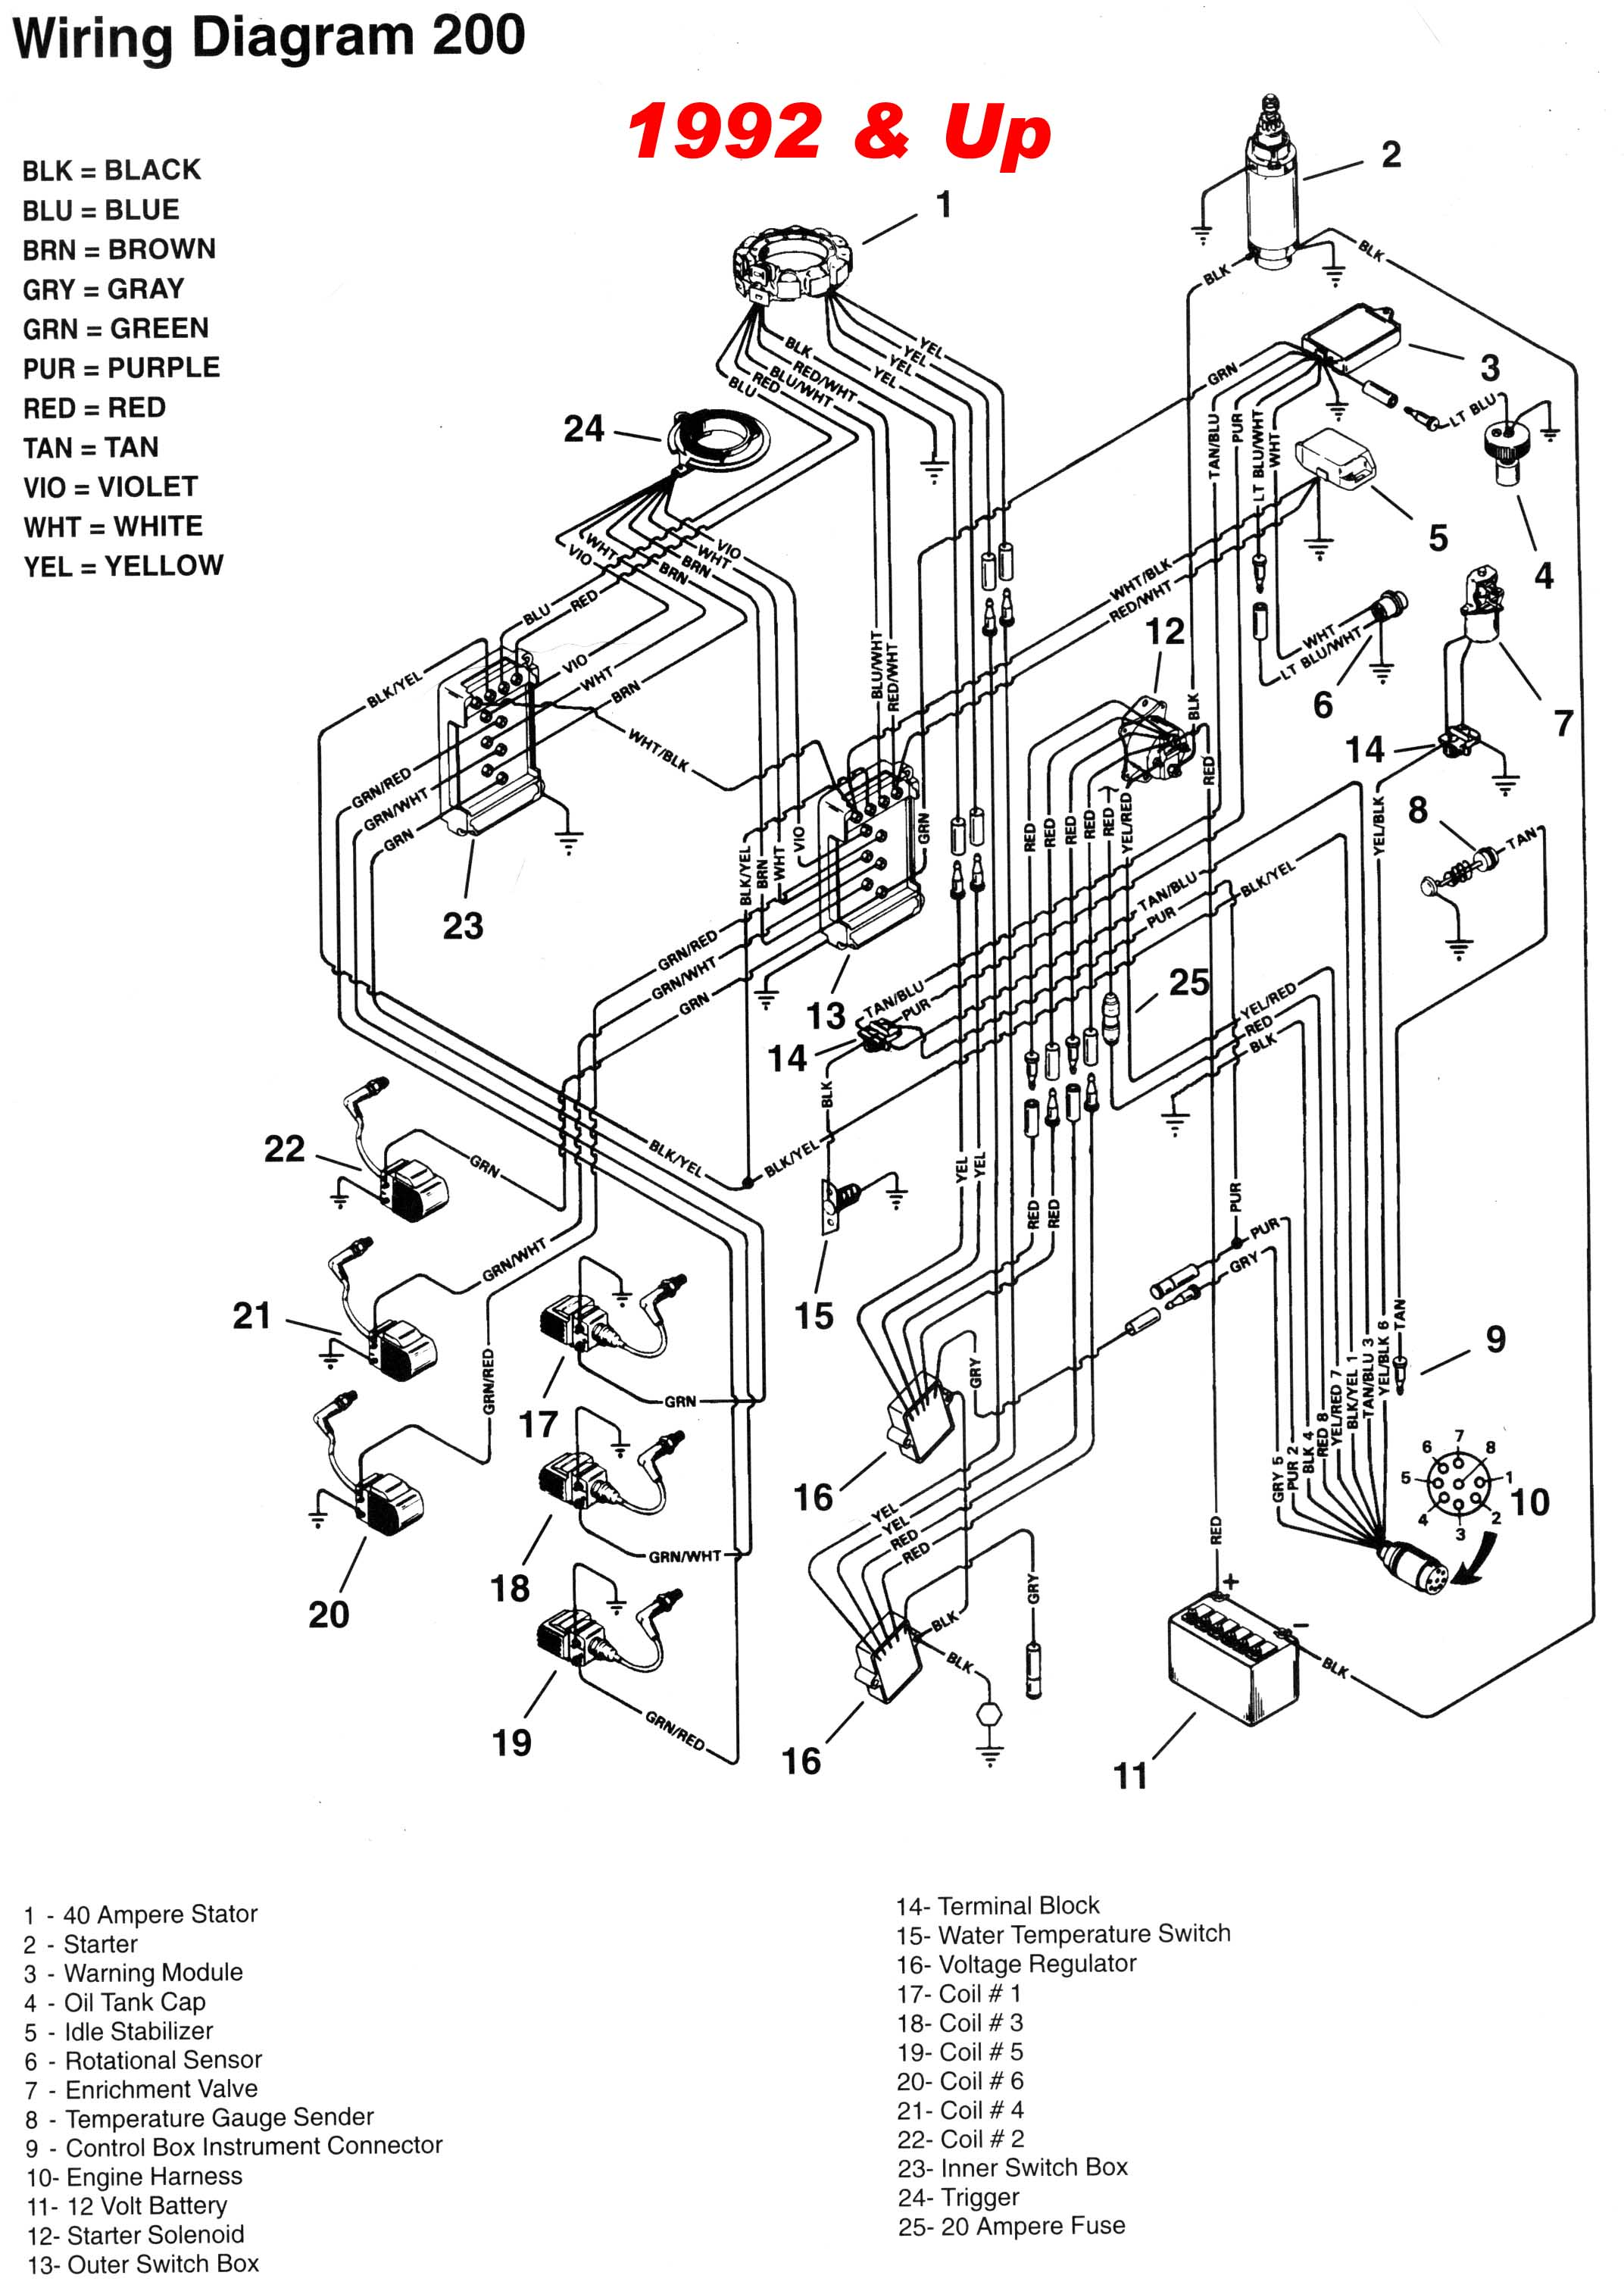 mercury_92up_200_wiring Yamaha Outboard Motor Wiring Diagram on suzuki outboard wiring diagrams, yamaha outboard motor engine, yamaha outboard motor transmission, yamaha outboard motor lower unit, yamaha outboard motor accessories, yamaha outboard motor steering, trolling motor wiring diagrams, yamaha outboard motor manuals, yamaha outboard motor specifications, yamaha outboard motor specs, yamaha outboard motor dimensions, mercury outboard wiring diagrams, air compressor wiring diagrams,